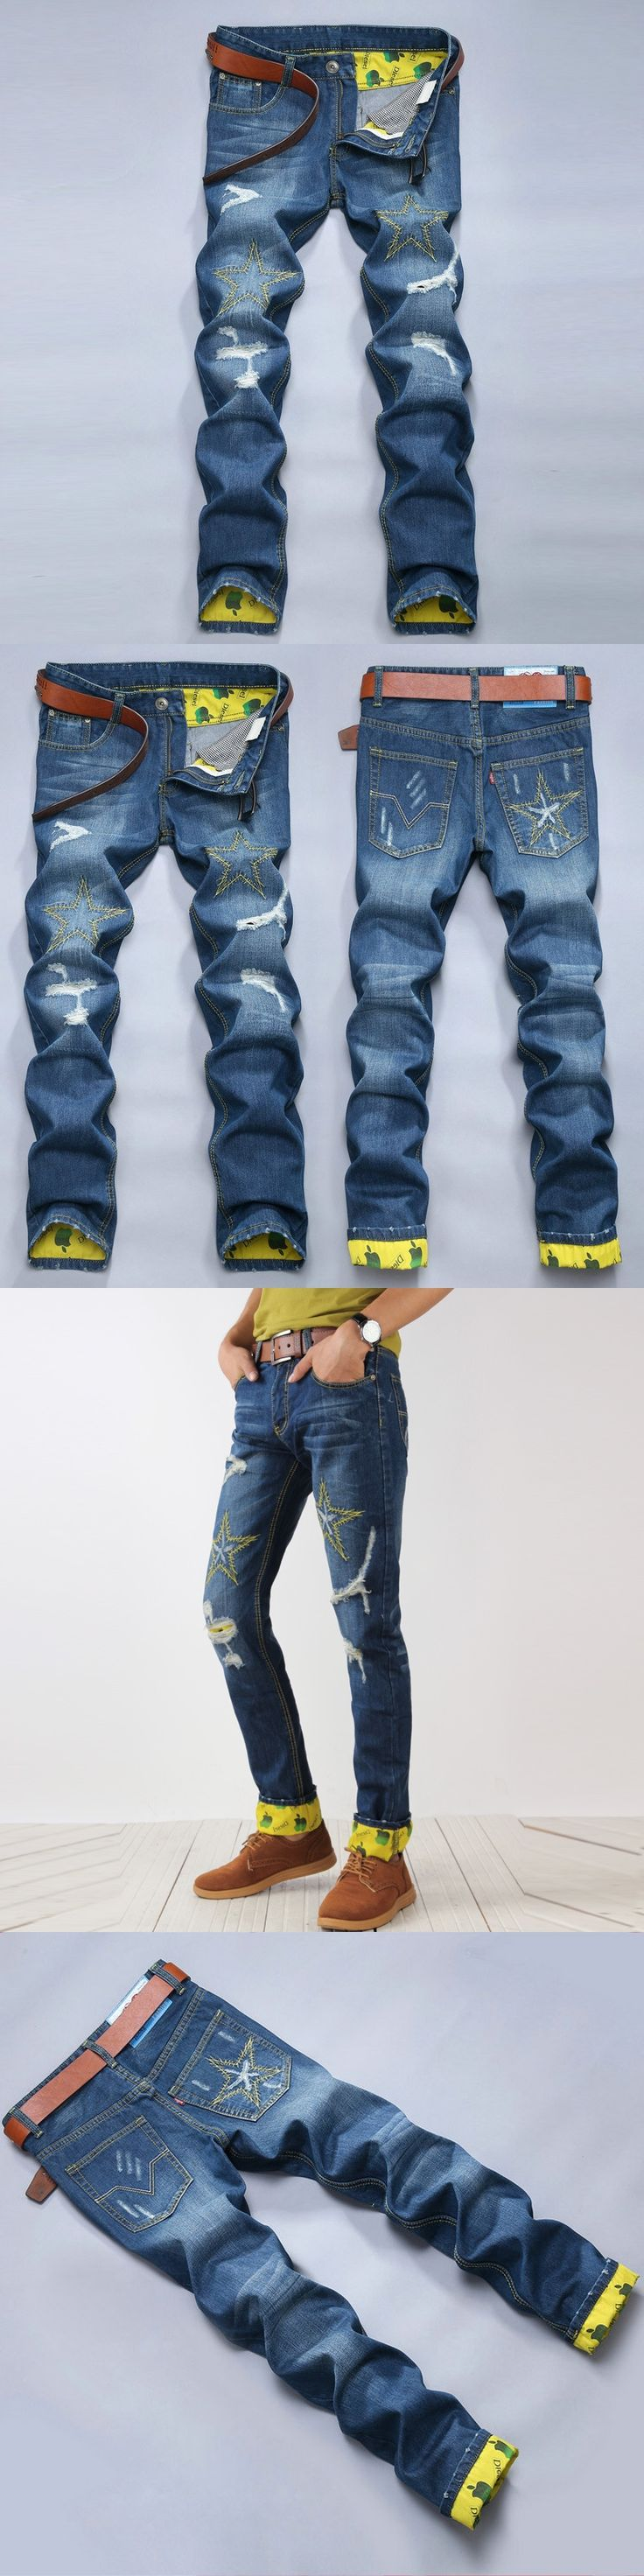 motorcycle jeans men cargo pocket jeans hole wash water male ripped jeans pantalon vaquero hombre fake designer clothes